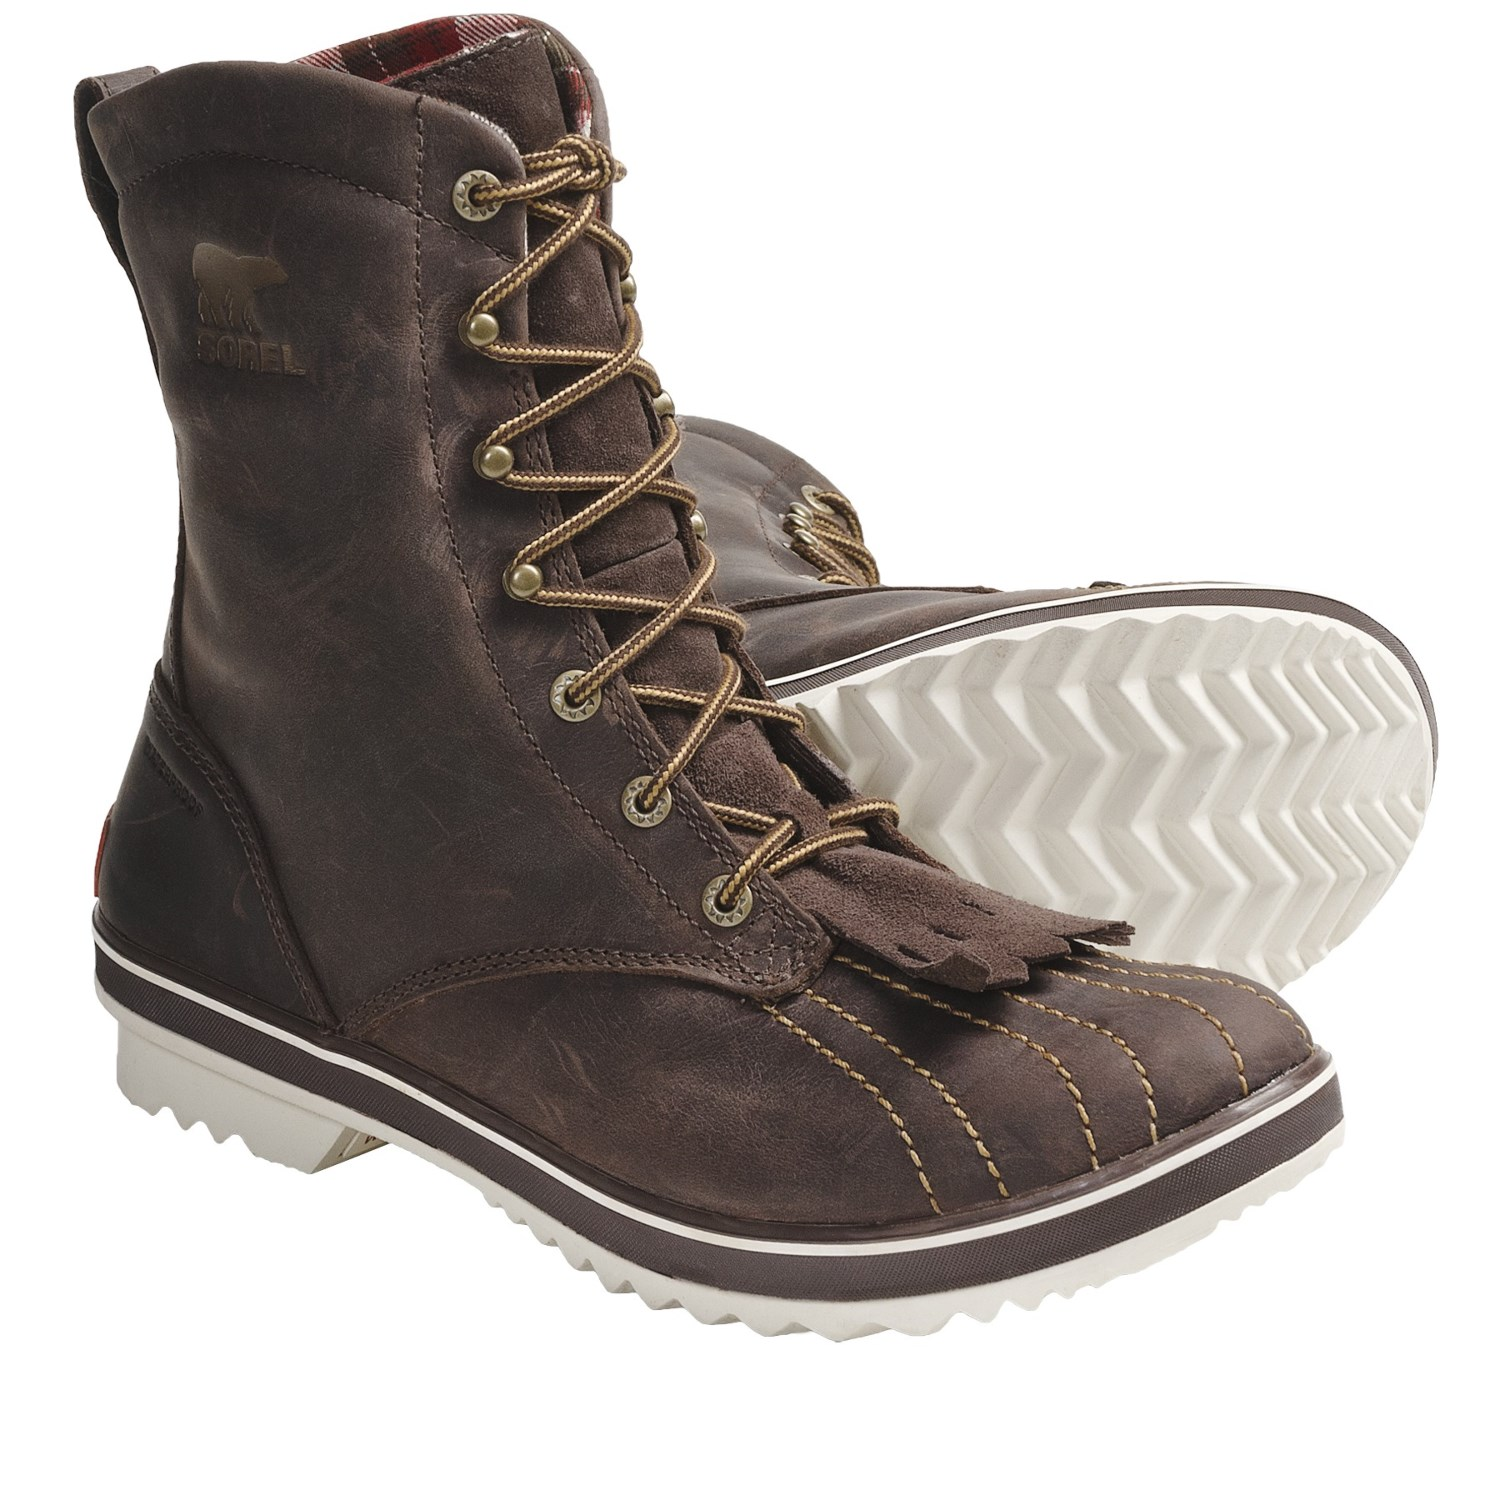 Best Rated Mens Winter Boots | Homewood Mountain Ski Resort